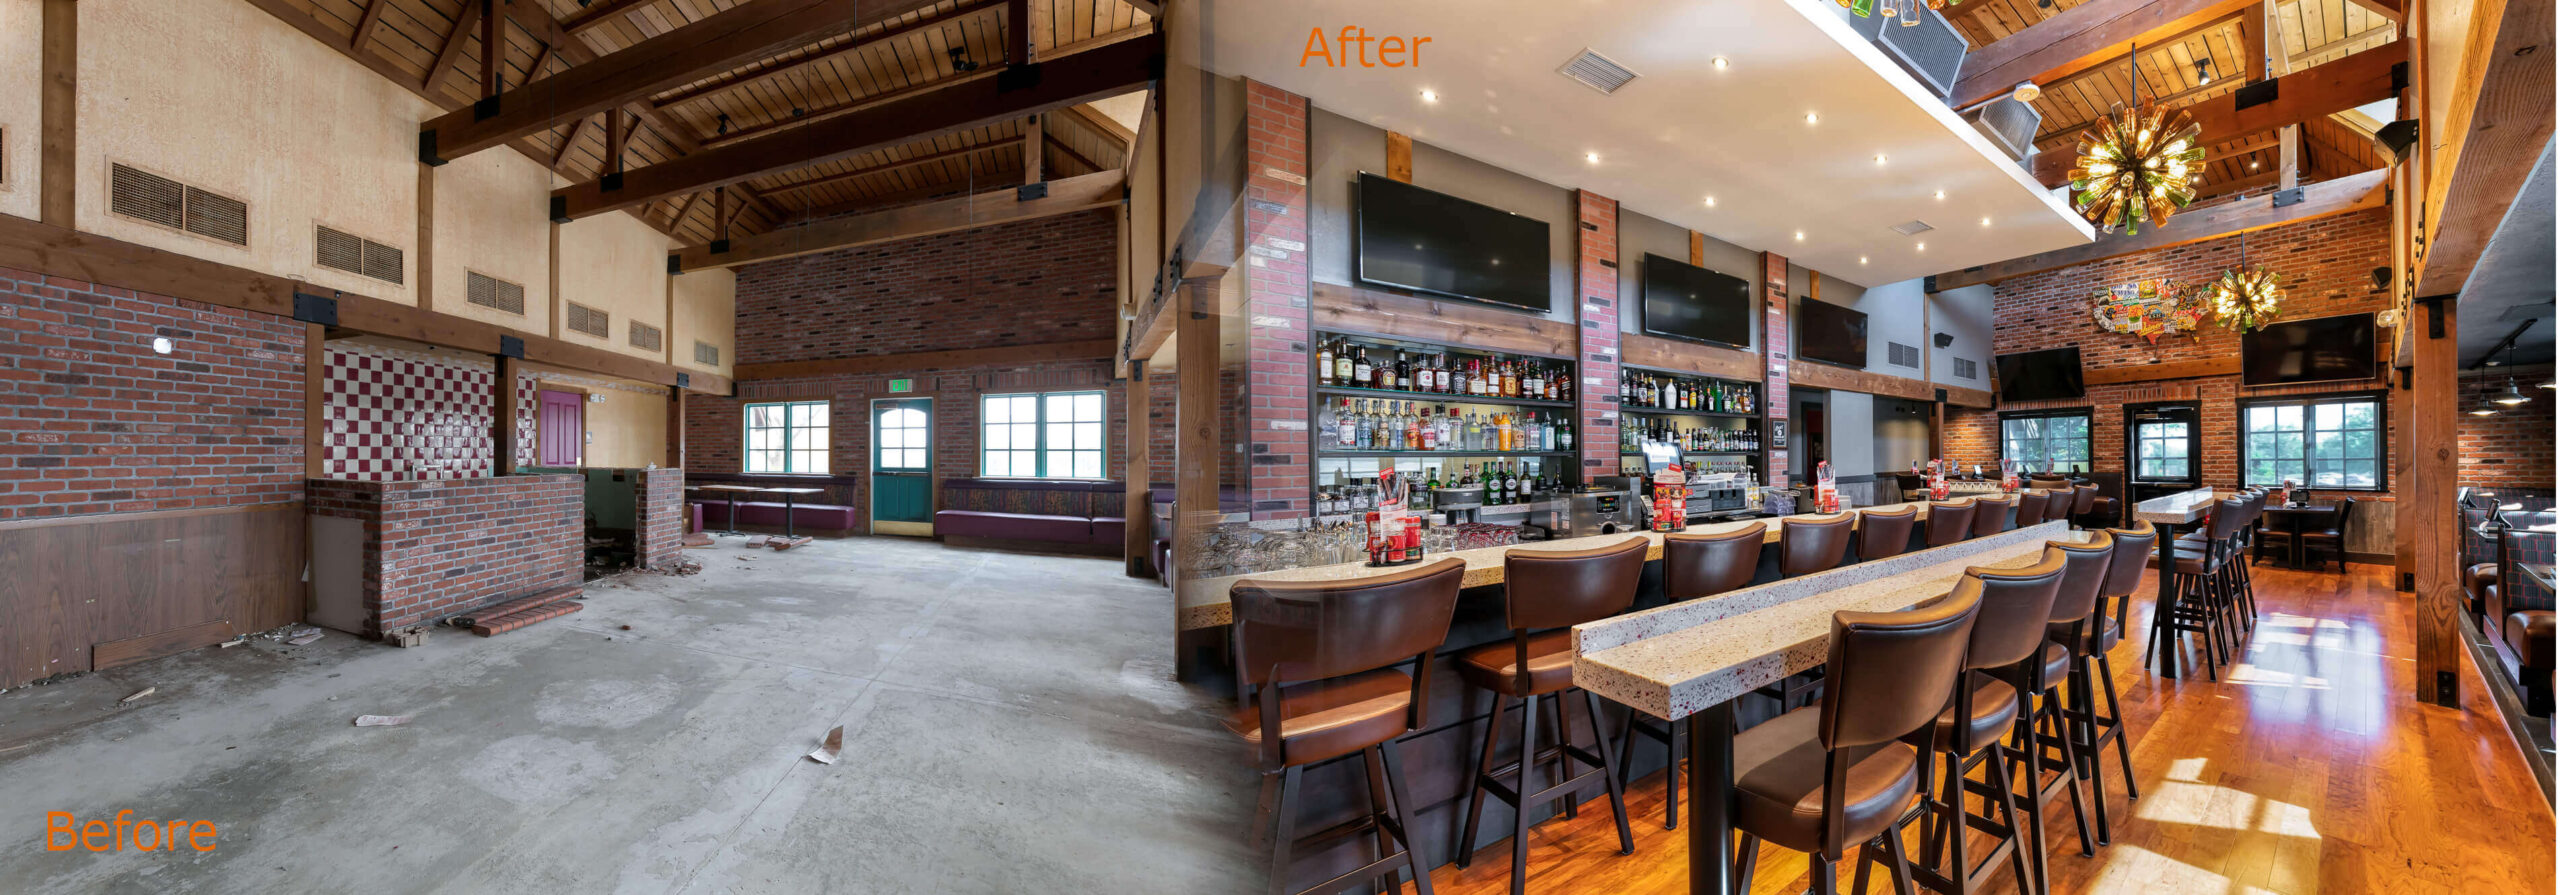 Red-Robin-Bar-II-Before-After